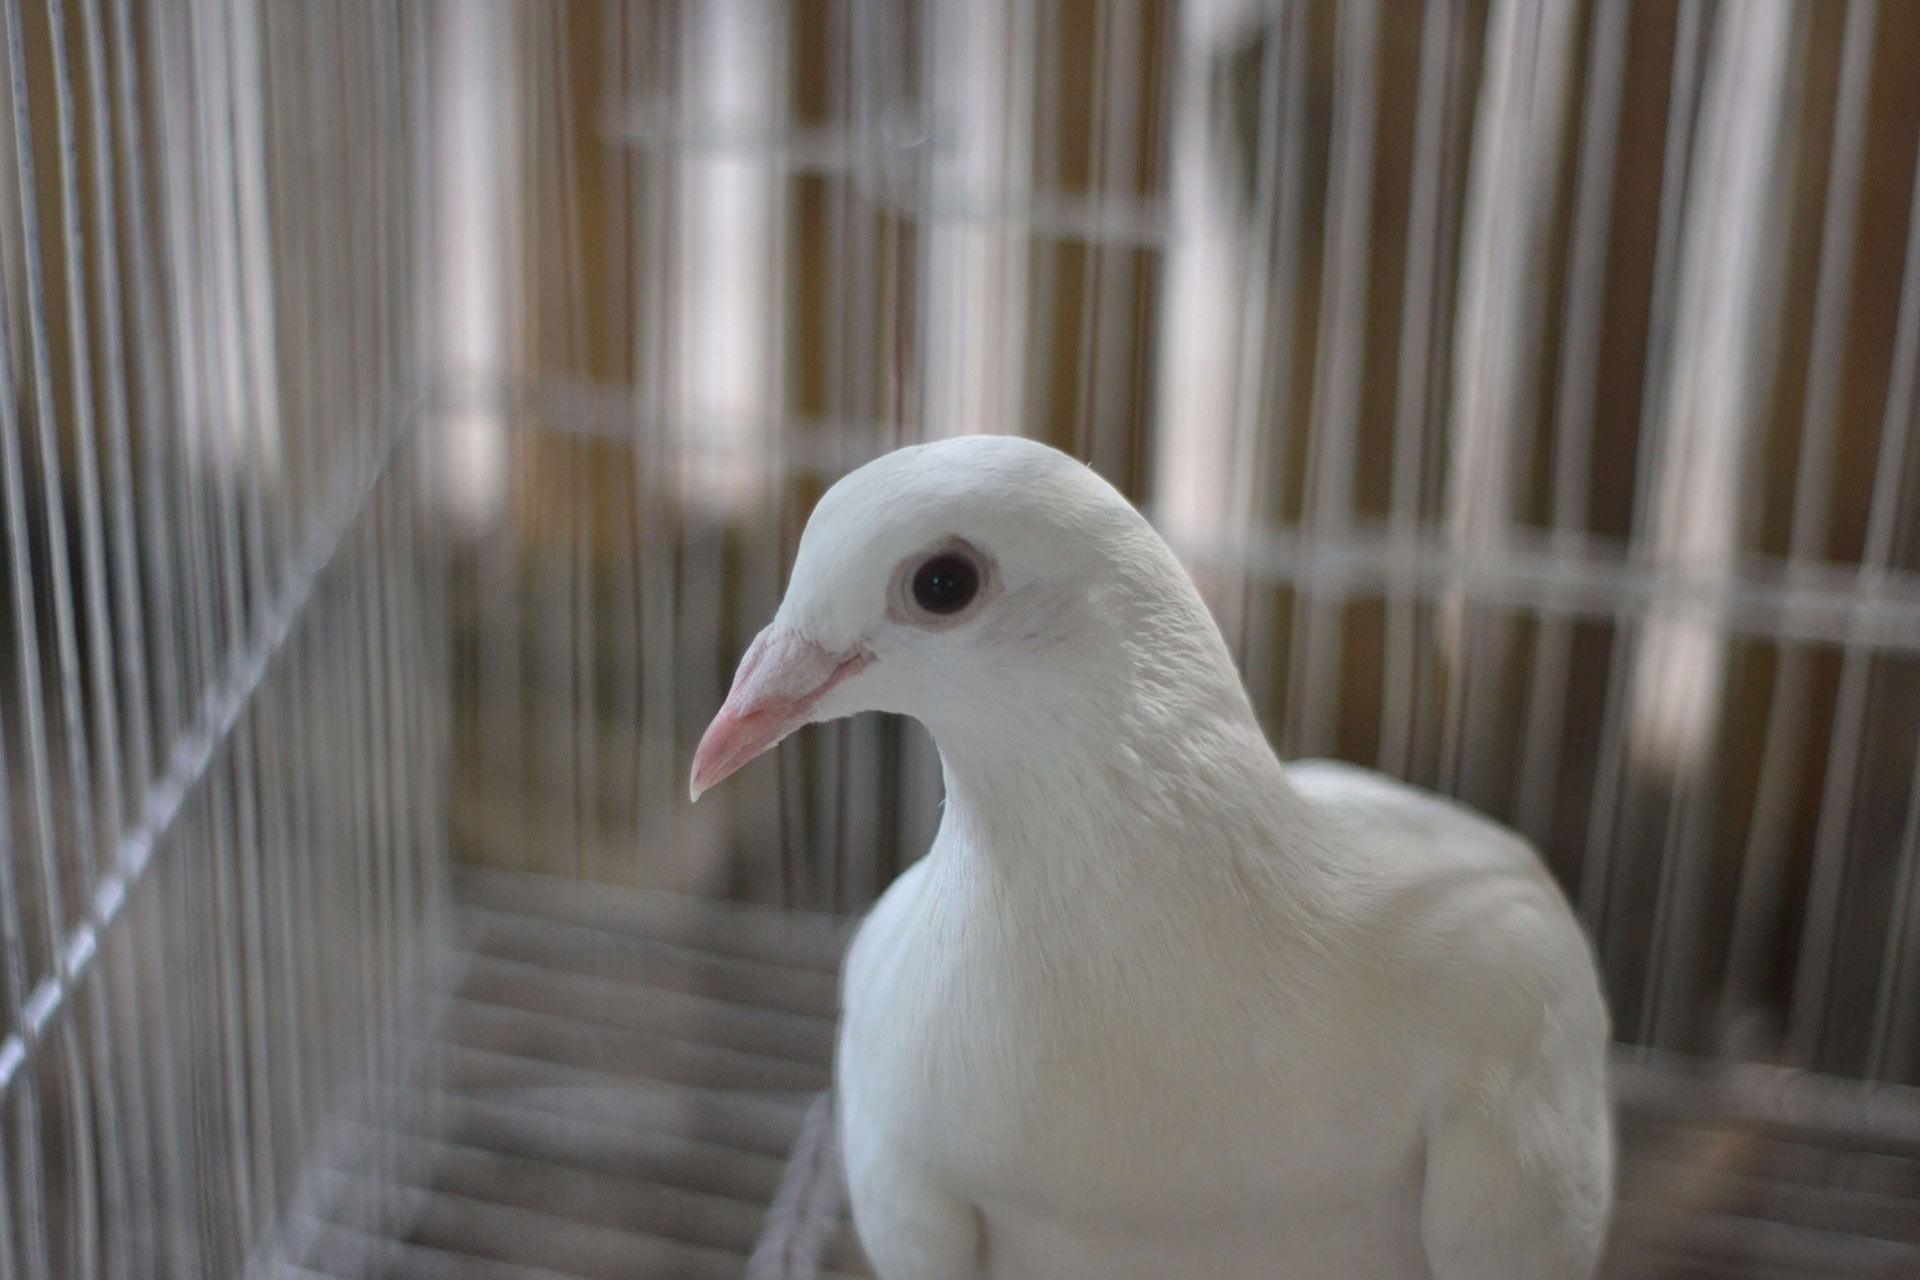 Dove is not a cruelty-free brand